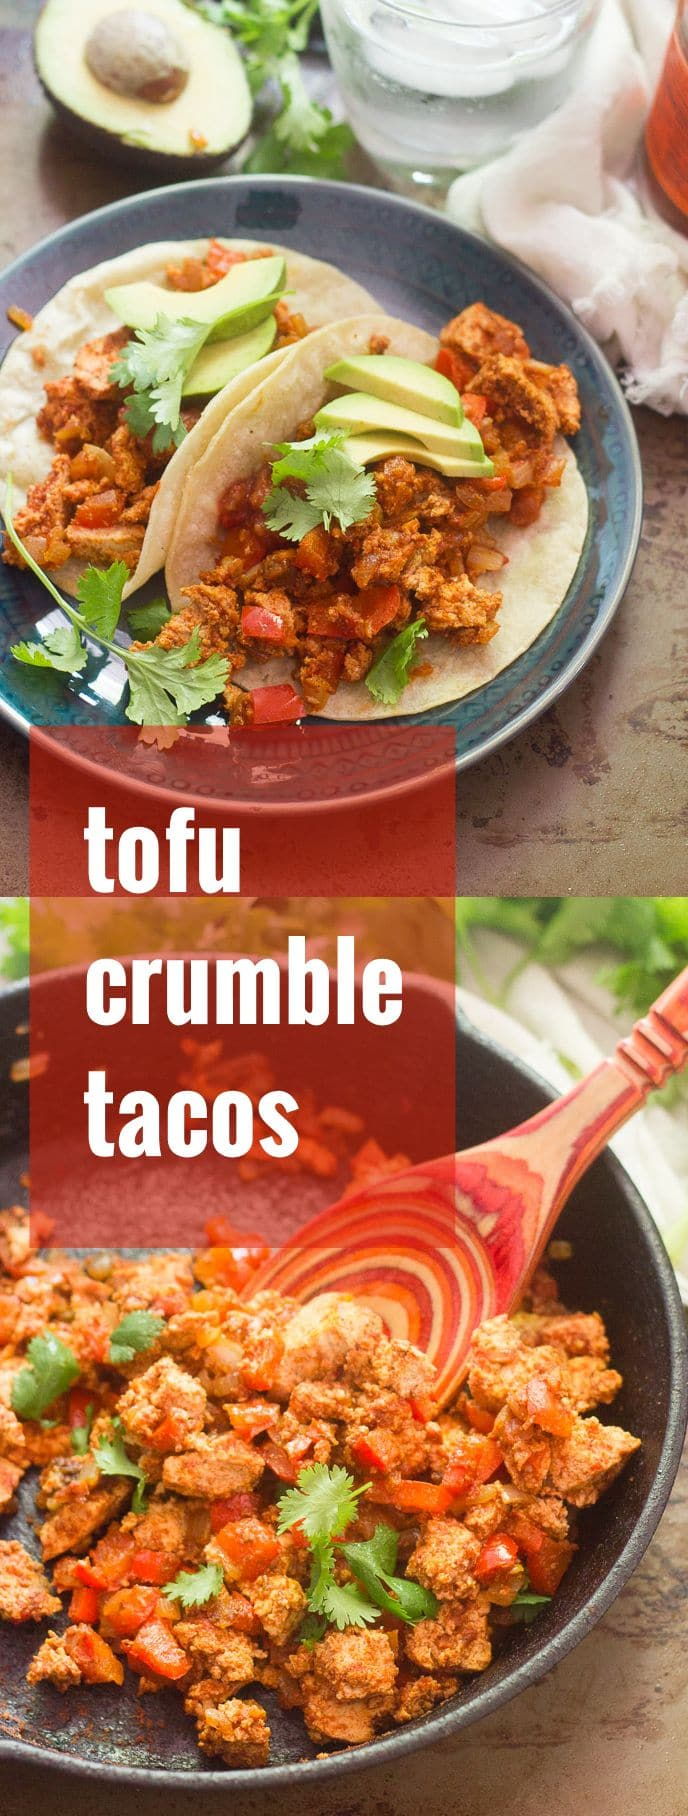 Tofu Crumble Tacos + How to Freeze Tofu for Awesome Texture!